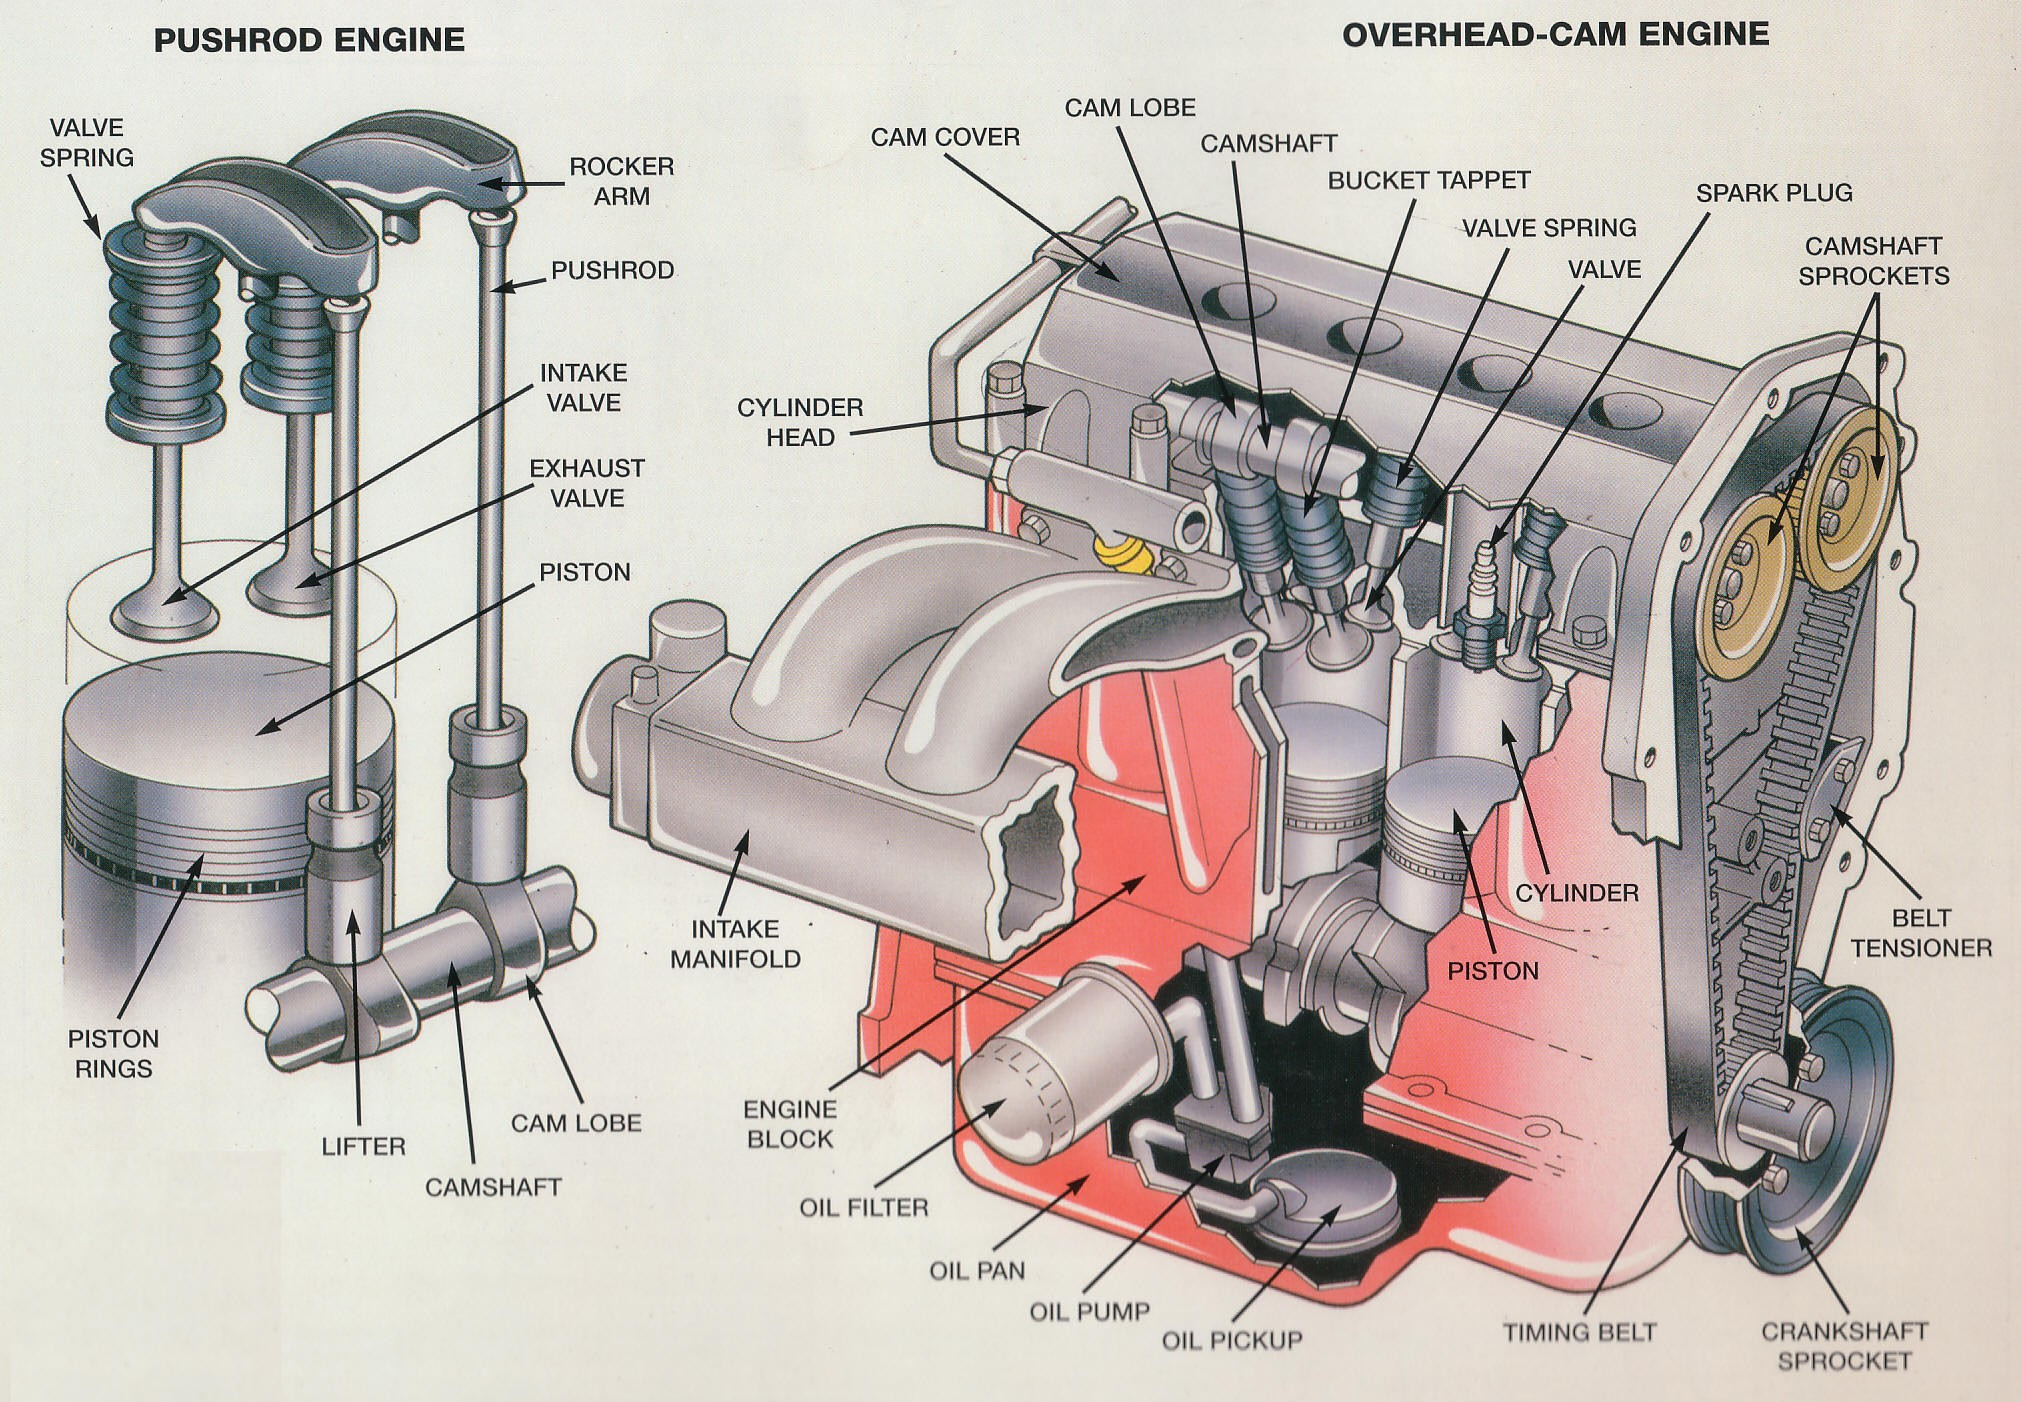 Diagram Of Combustion Engine Internal Bustion Engine Exploded View Google Search Of Diagram Of Combustion Engine